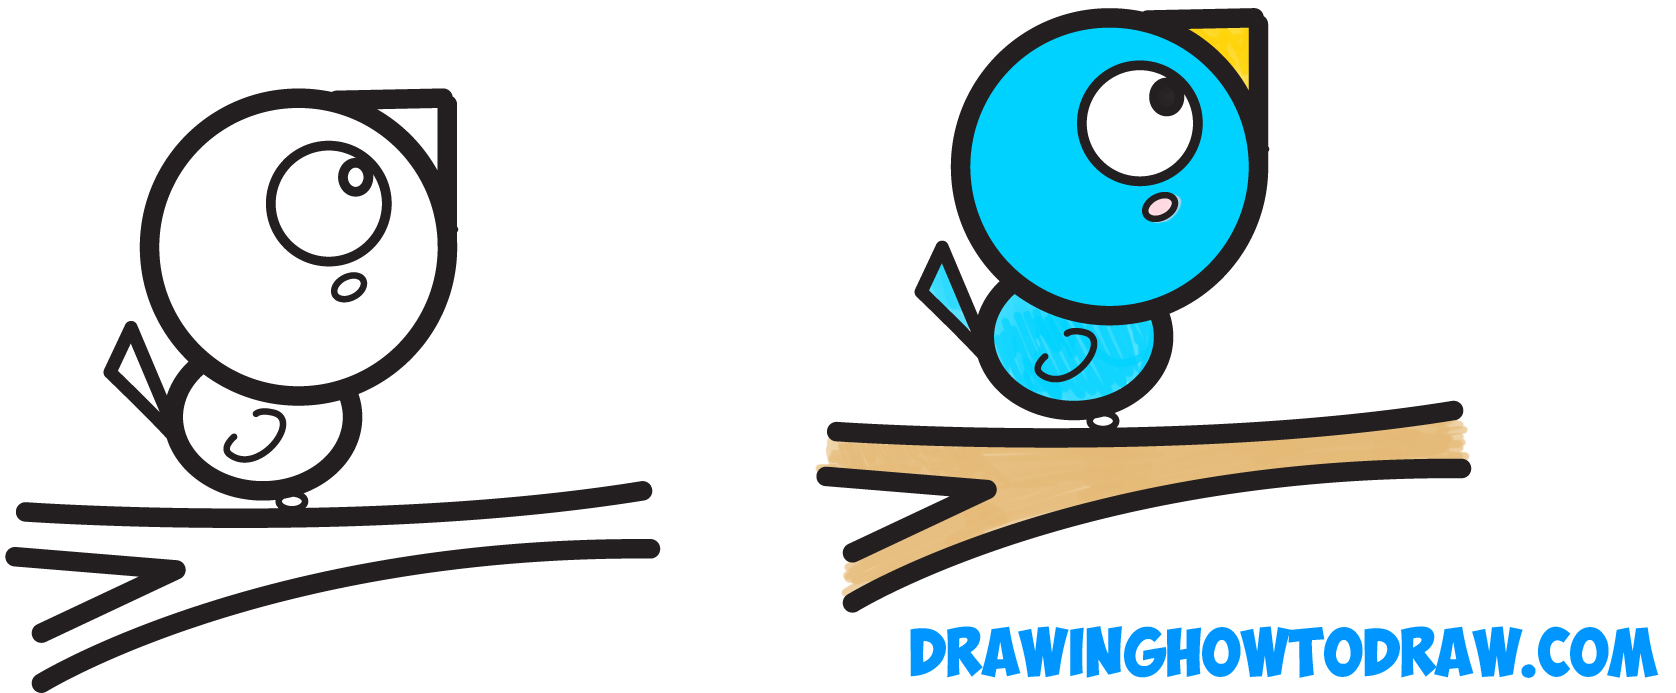 How To Draw A Bird On A Branch Easy For Kids Step By Step Drawing